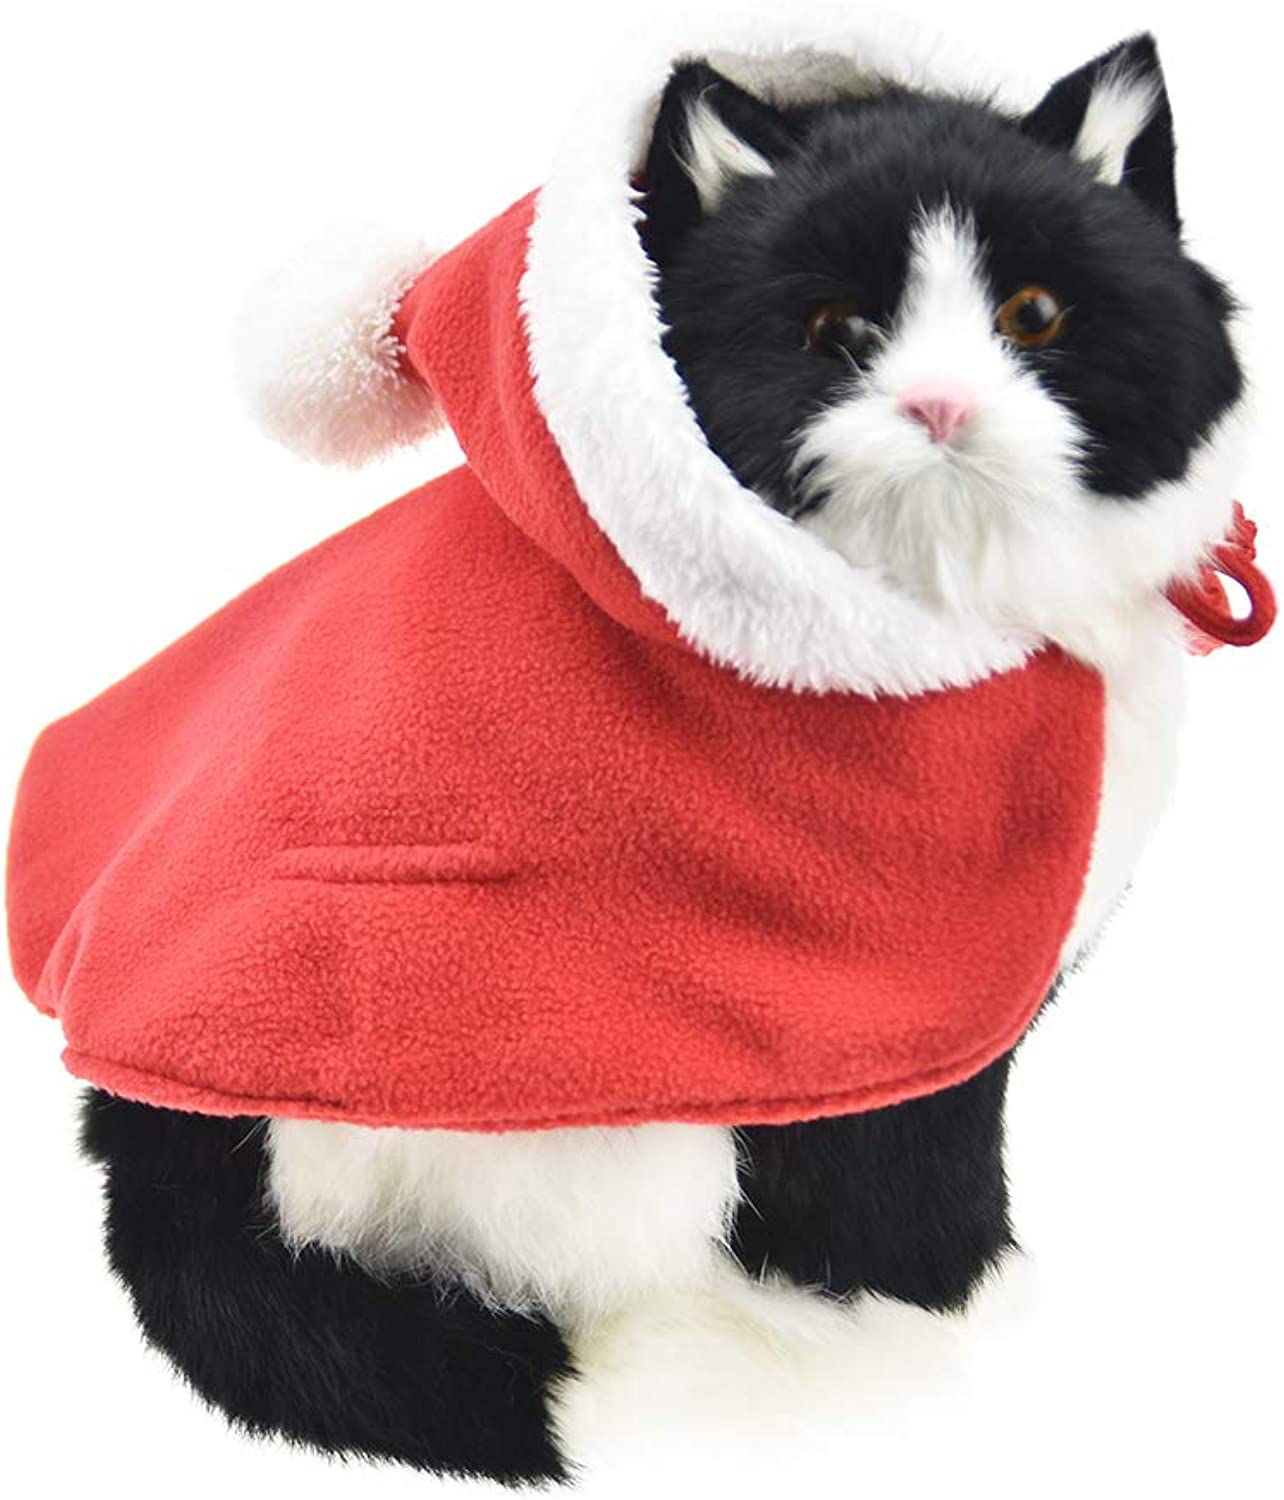 FLAdorepet Christmas Hat Santa Claus Cat Costumes for Kitten Small Dogs Pet Cape Winter Coat Warm Clothes (M, Red)